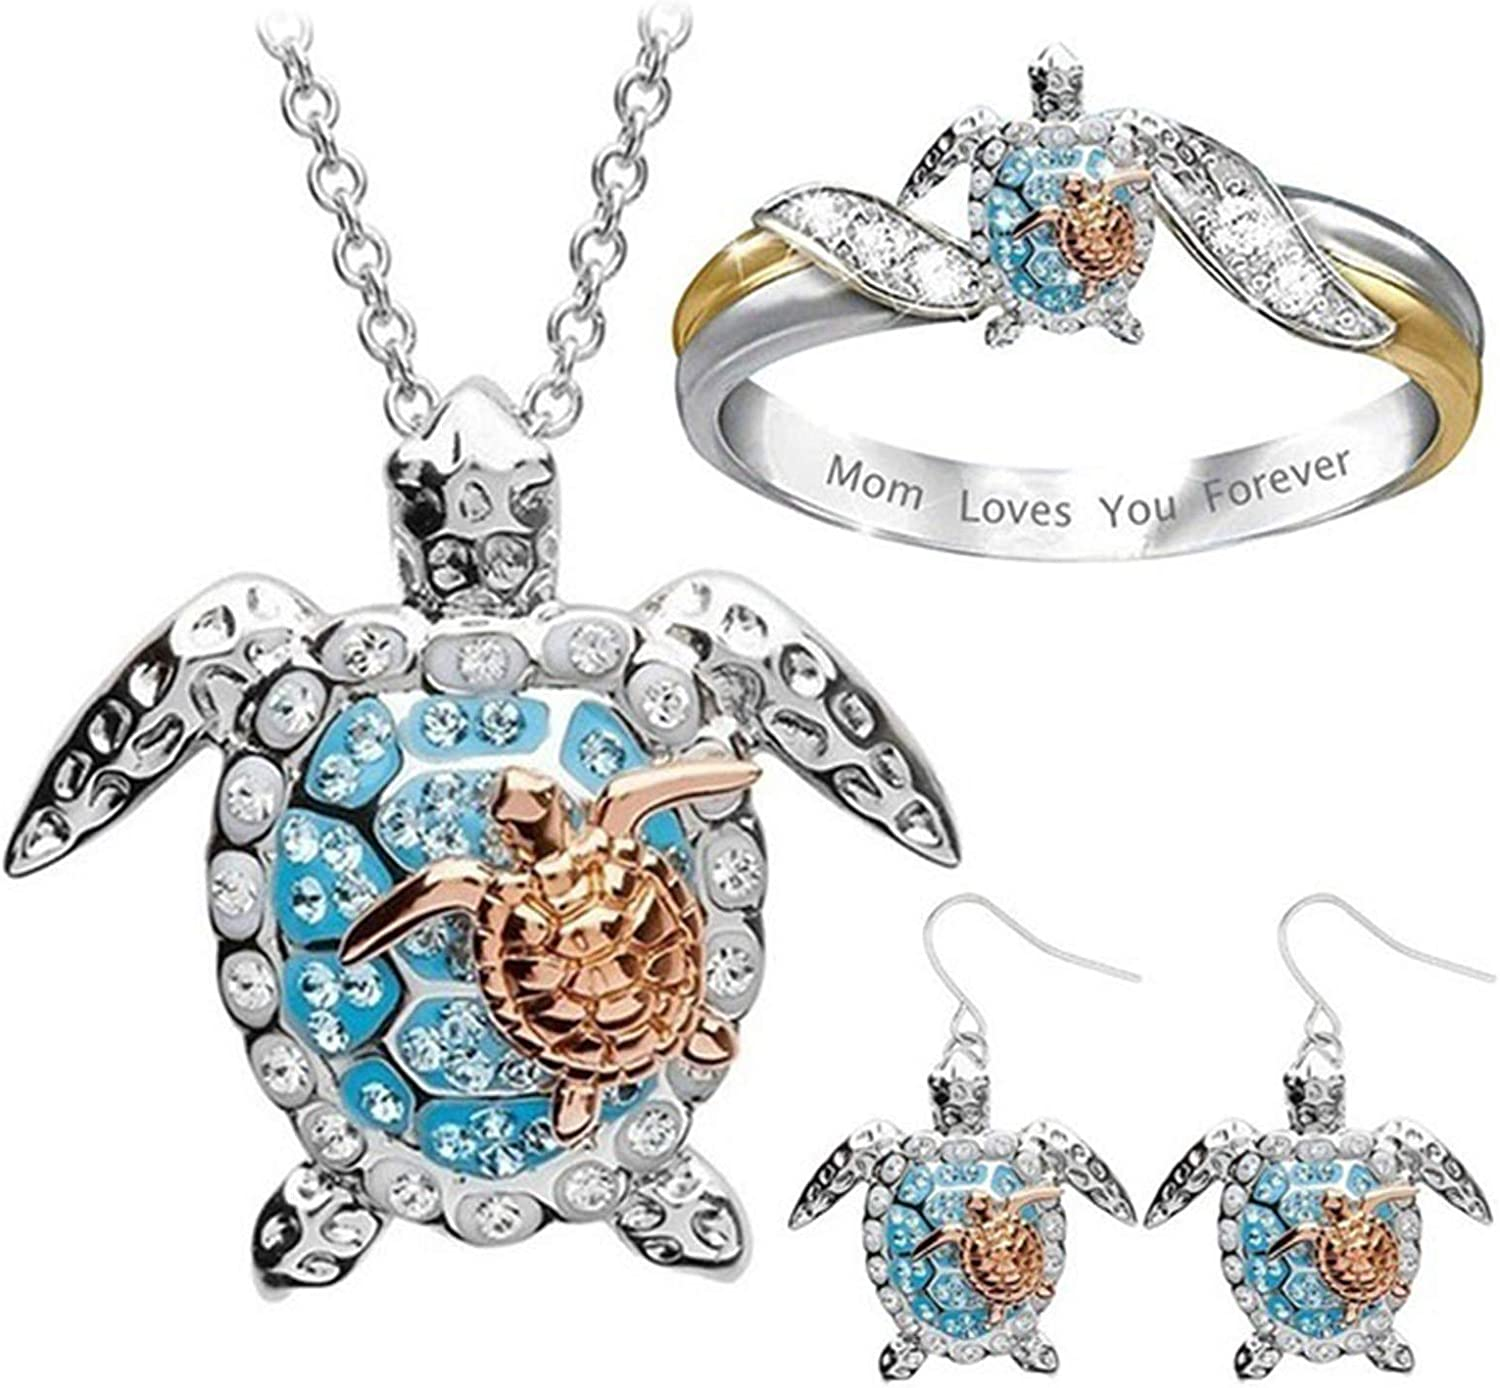 HaHawaii Ring Necklace Earring Set, Mom Loves You Forever Sea Turtle Pendant Necklace Ring Ear Hook Earrings Set - 1